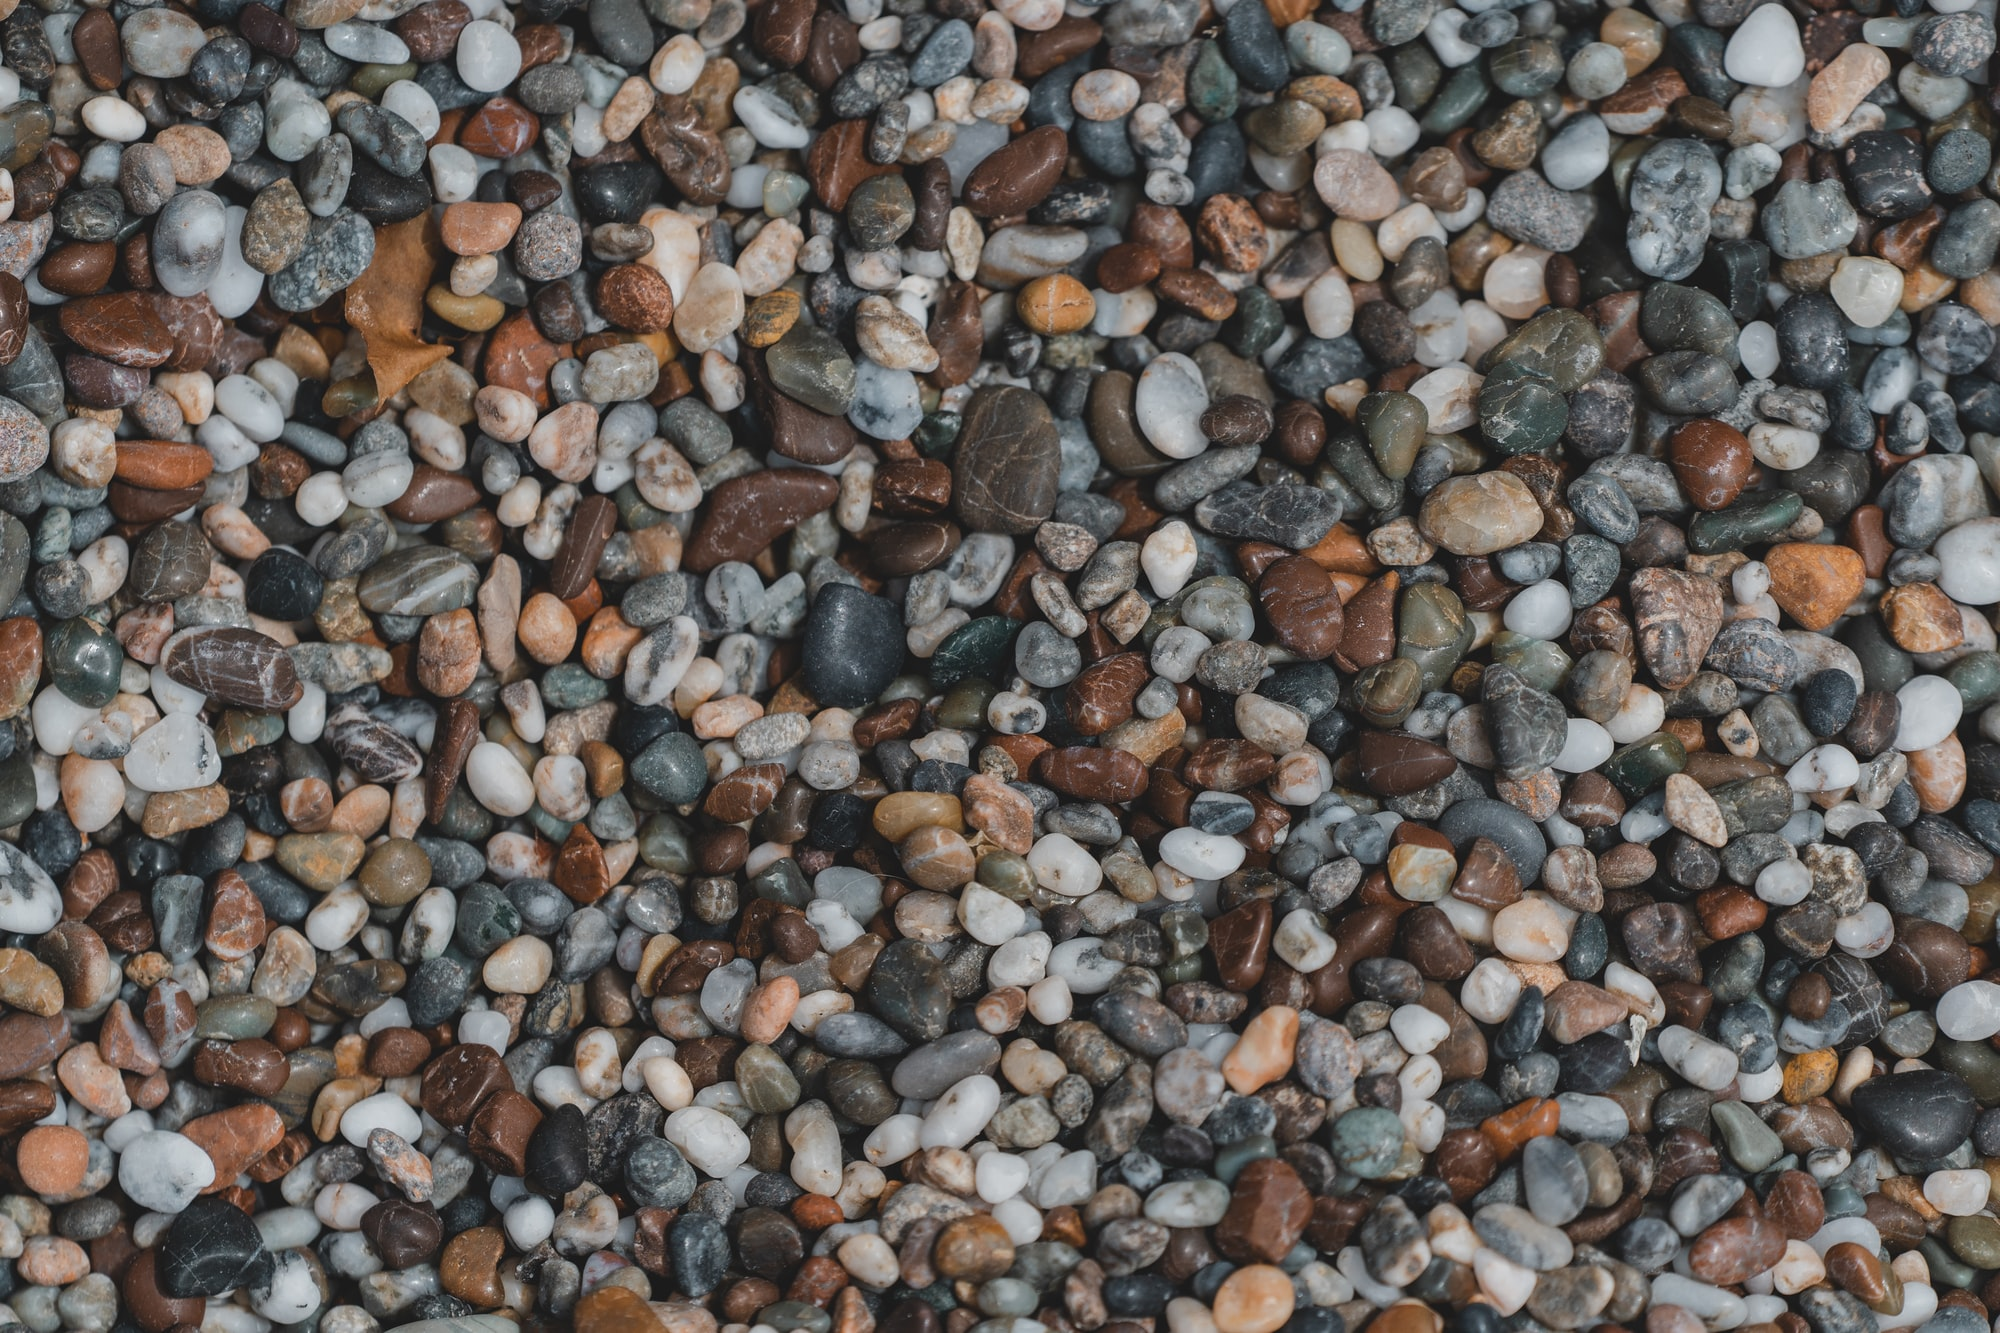 Details of a pebble beach. Such a wild experience to have tiny stones under your feet instead of sand between your toes.